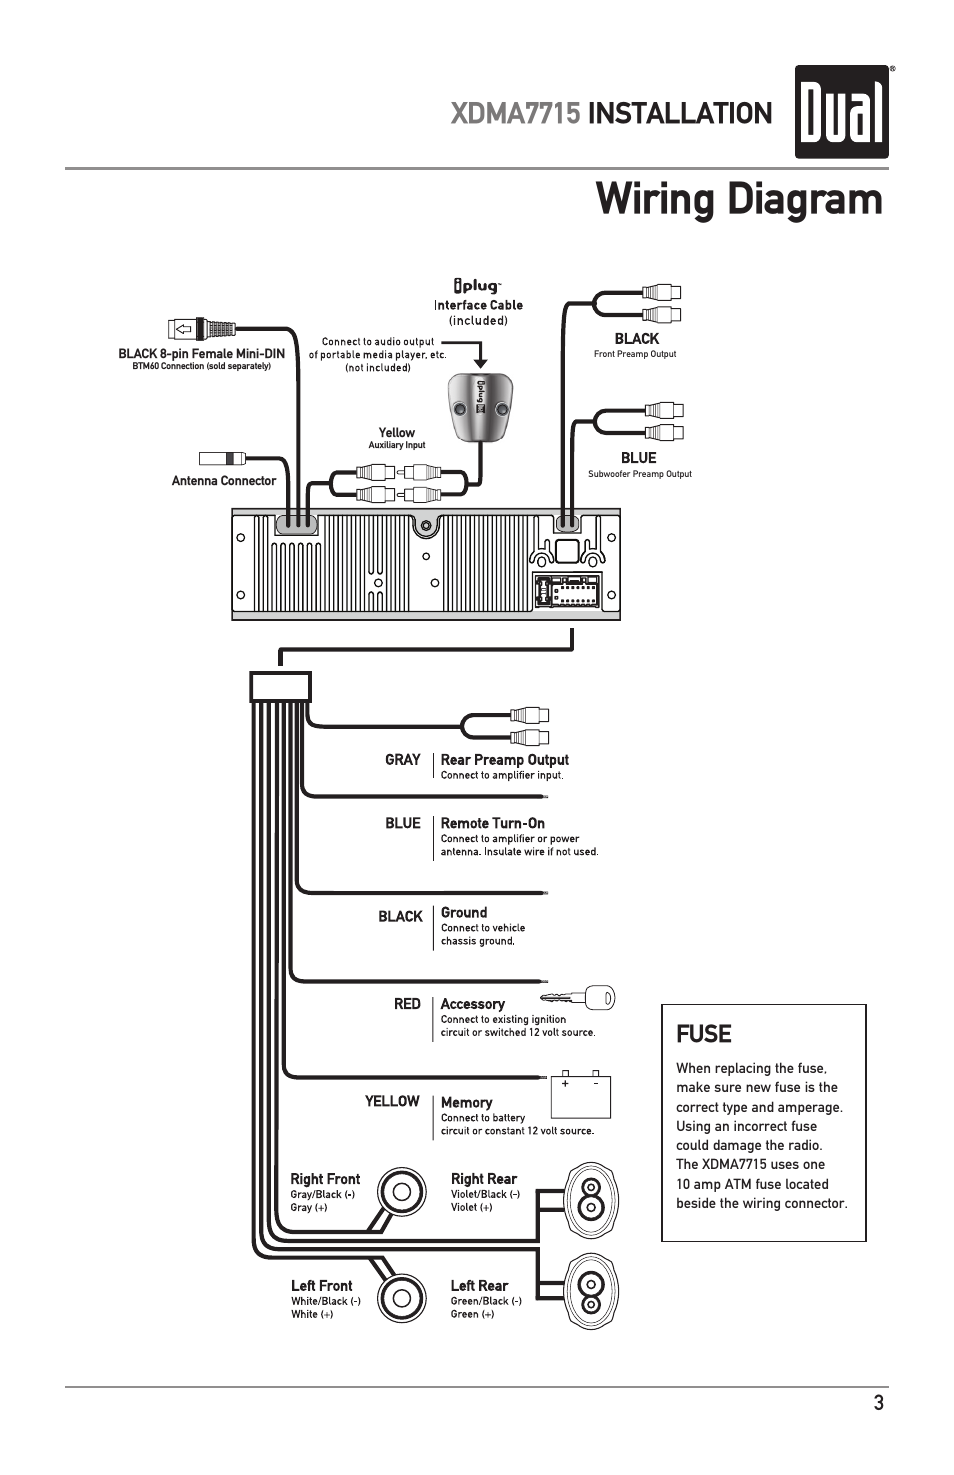 dual xd1225 wiring diagram